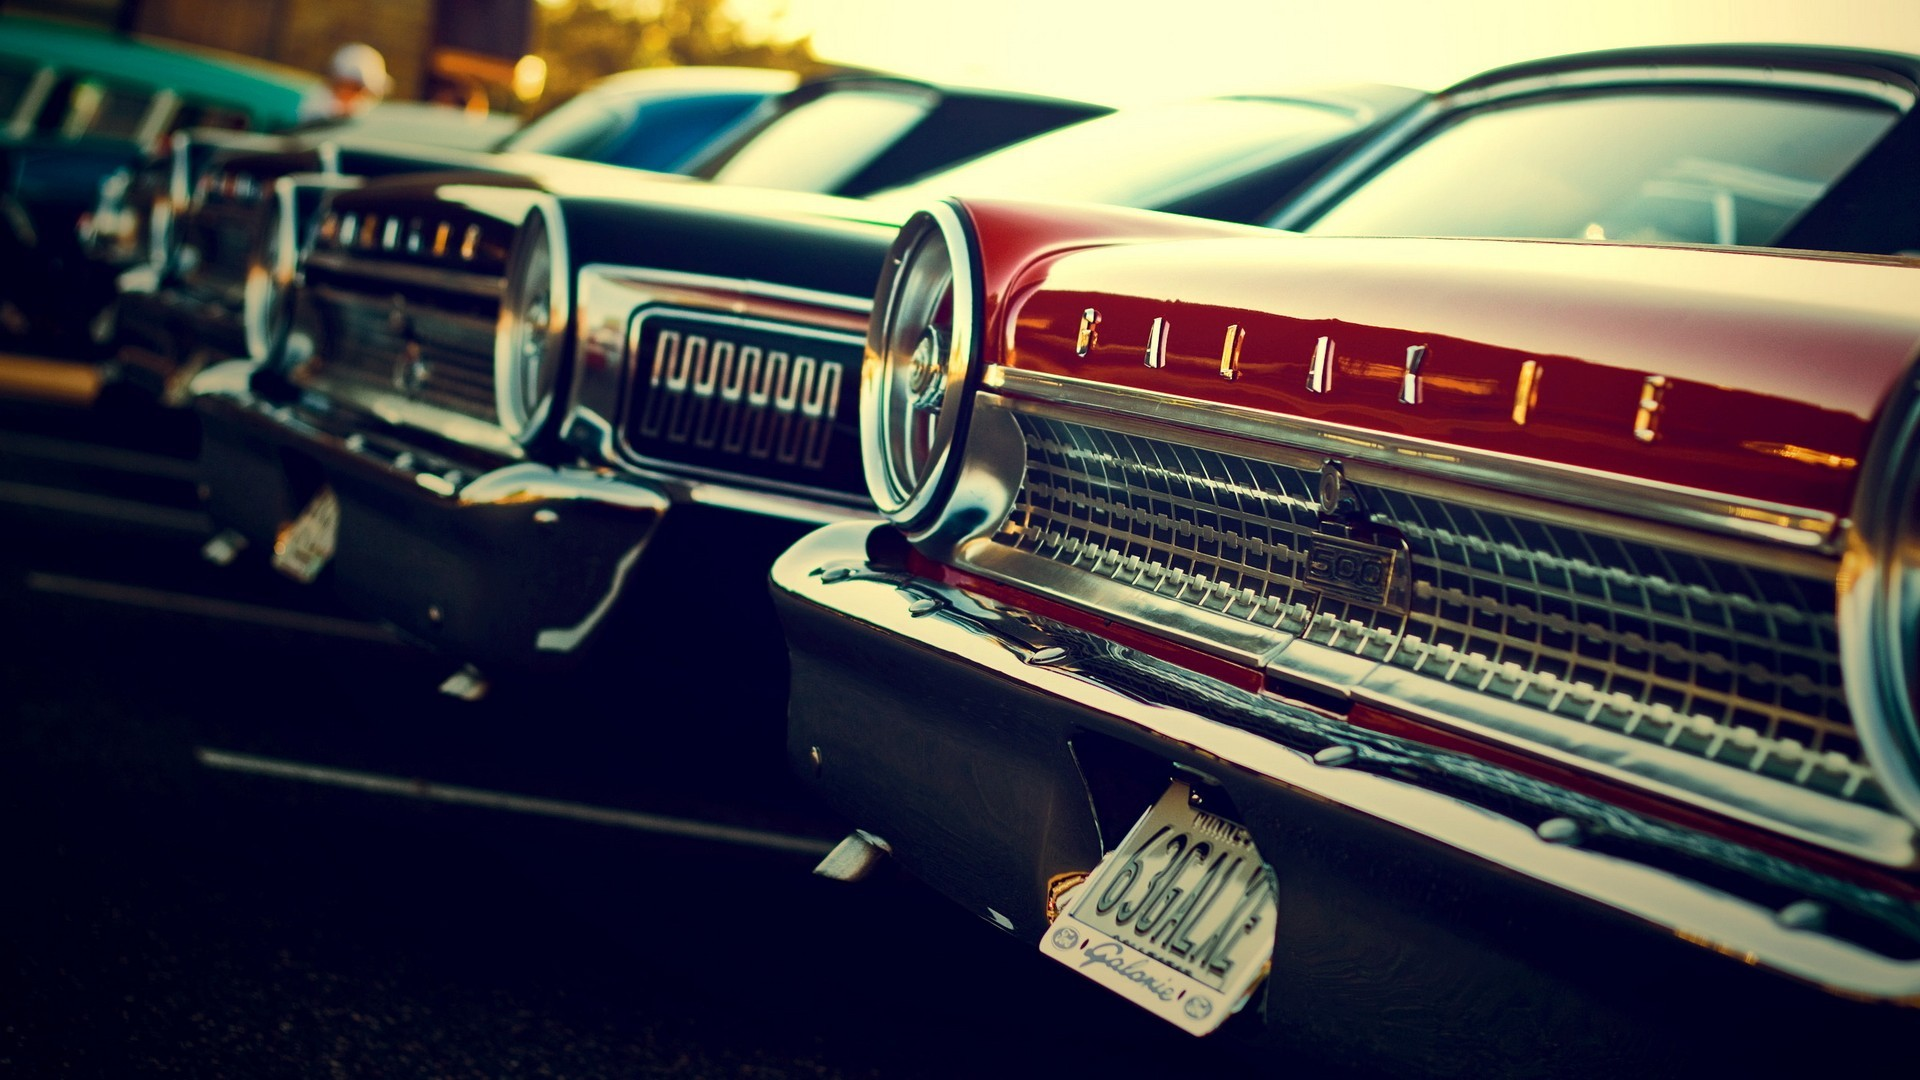 1920x1080 Hd Wallpapers Of Old Cars 52 With Hd Wallpapers Of Old Cars